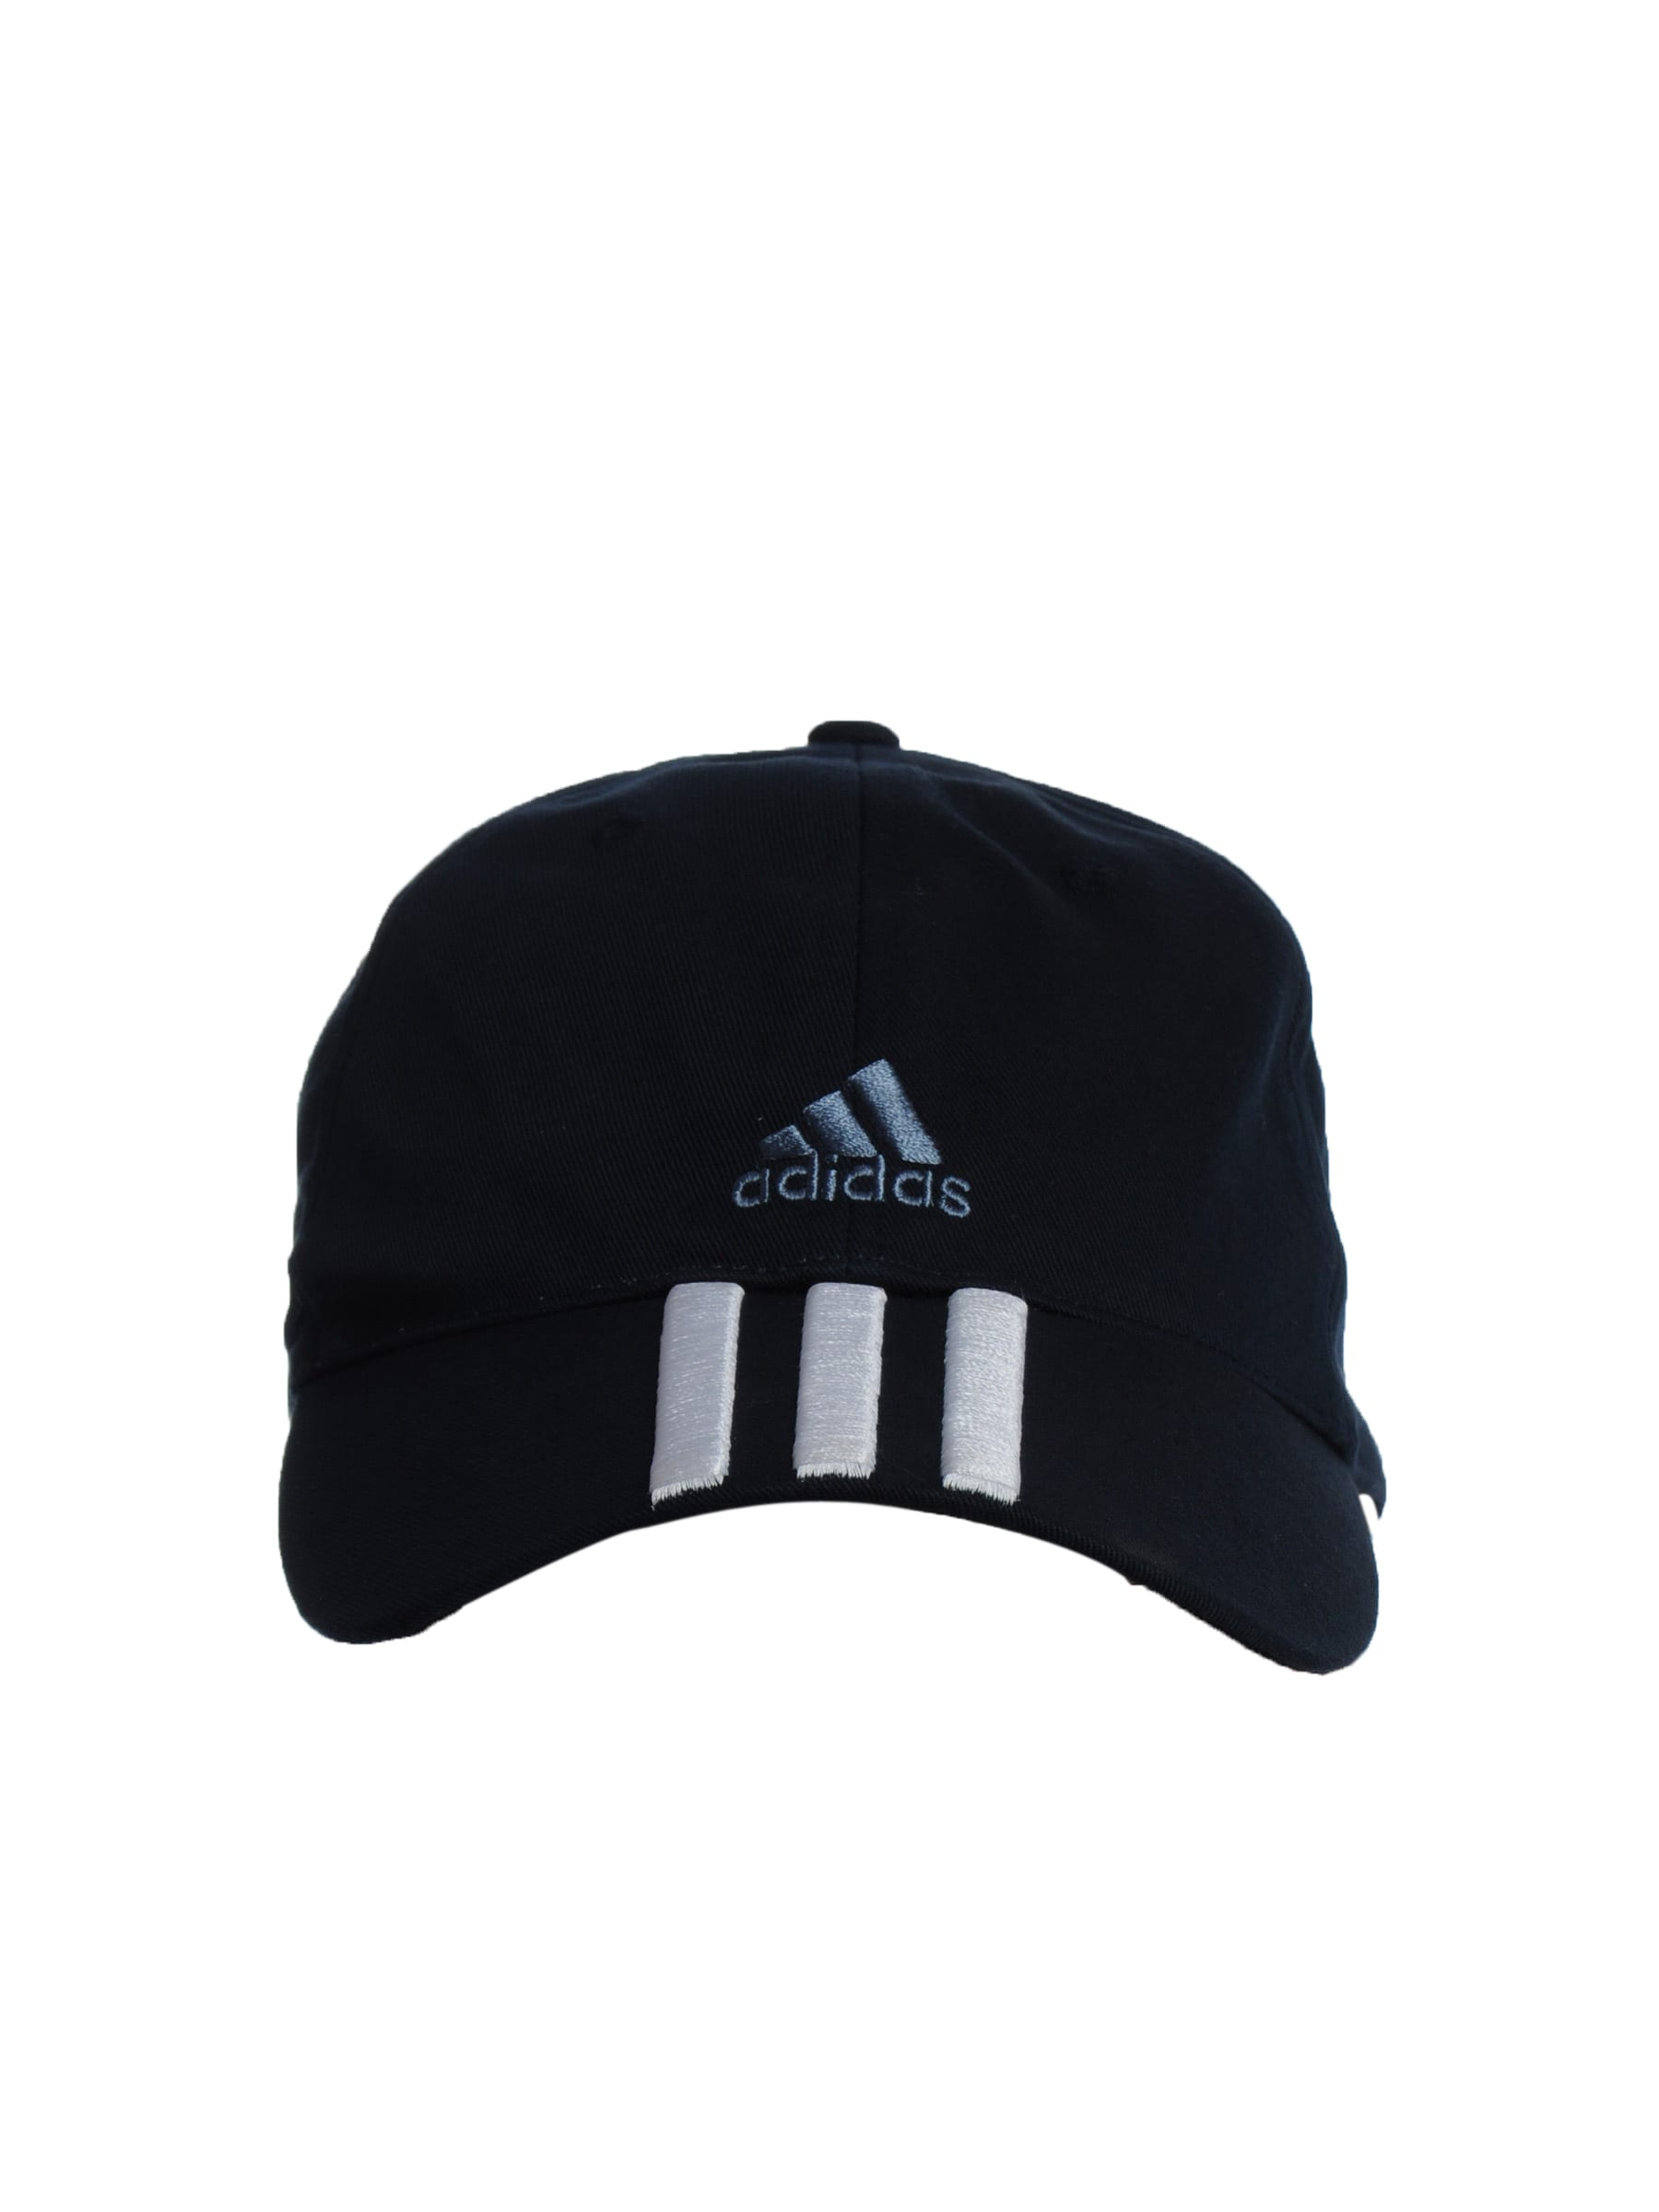 2aa179724bc Adidas e81659 Unisex Sports Navy Blue Caps - Best Price in India ...